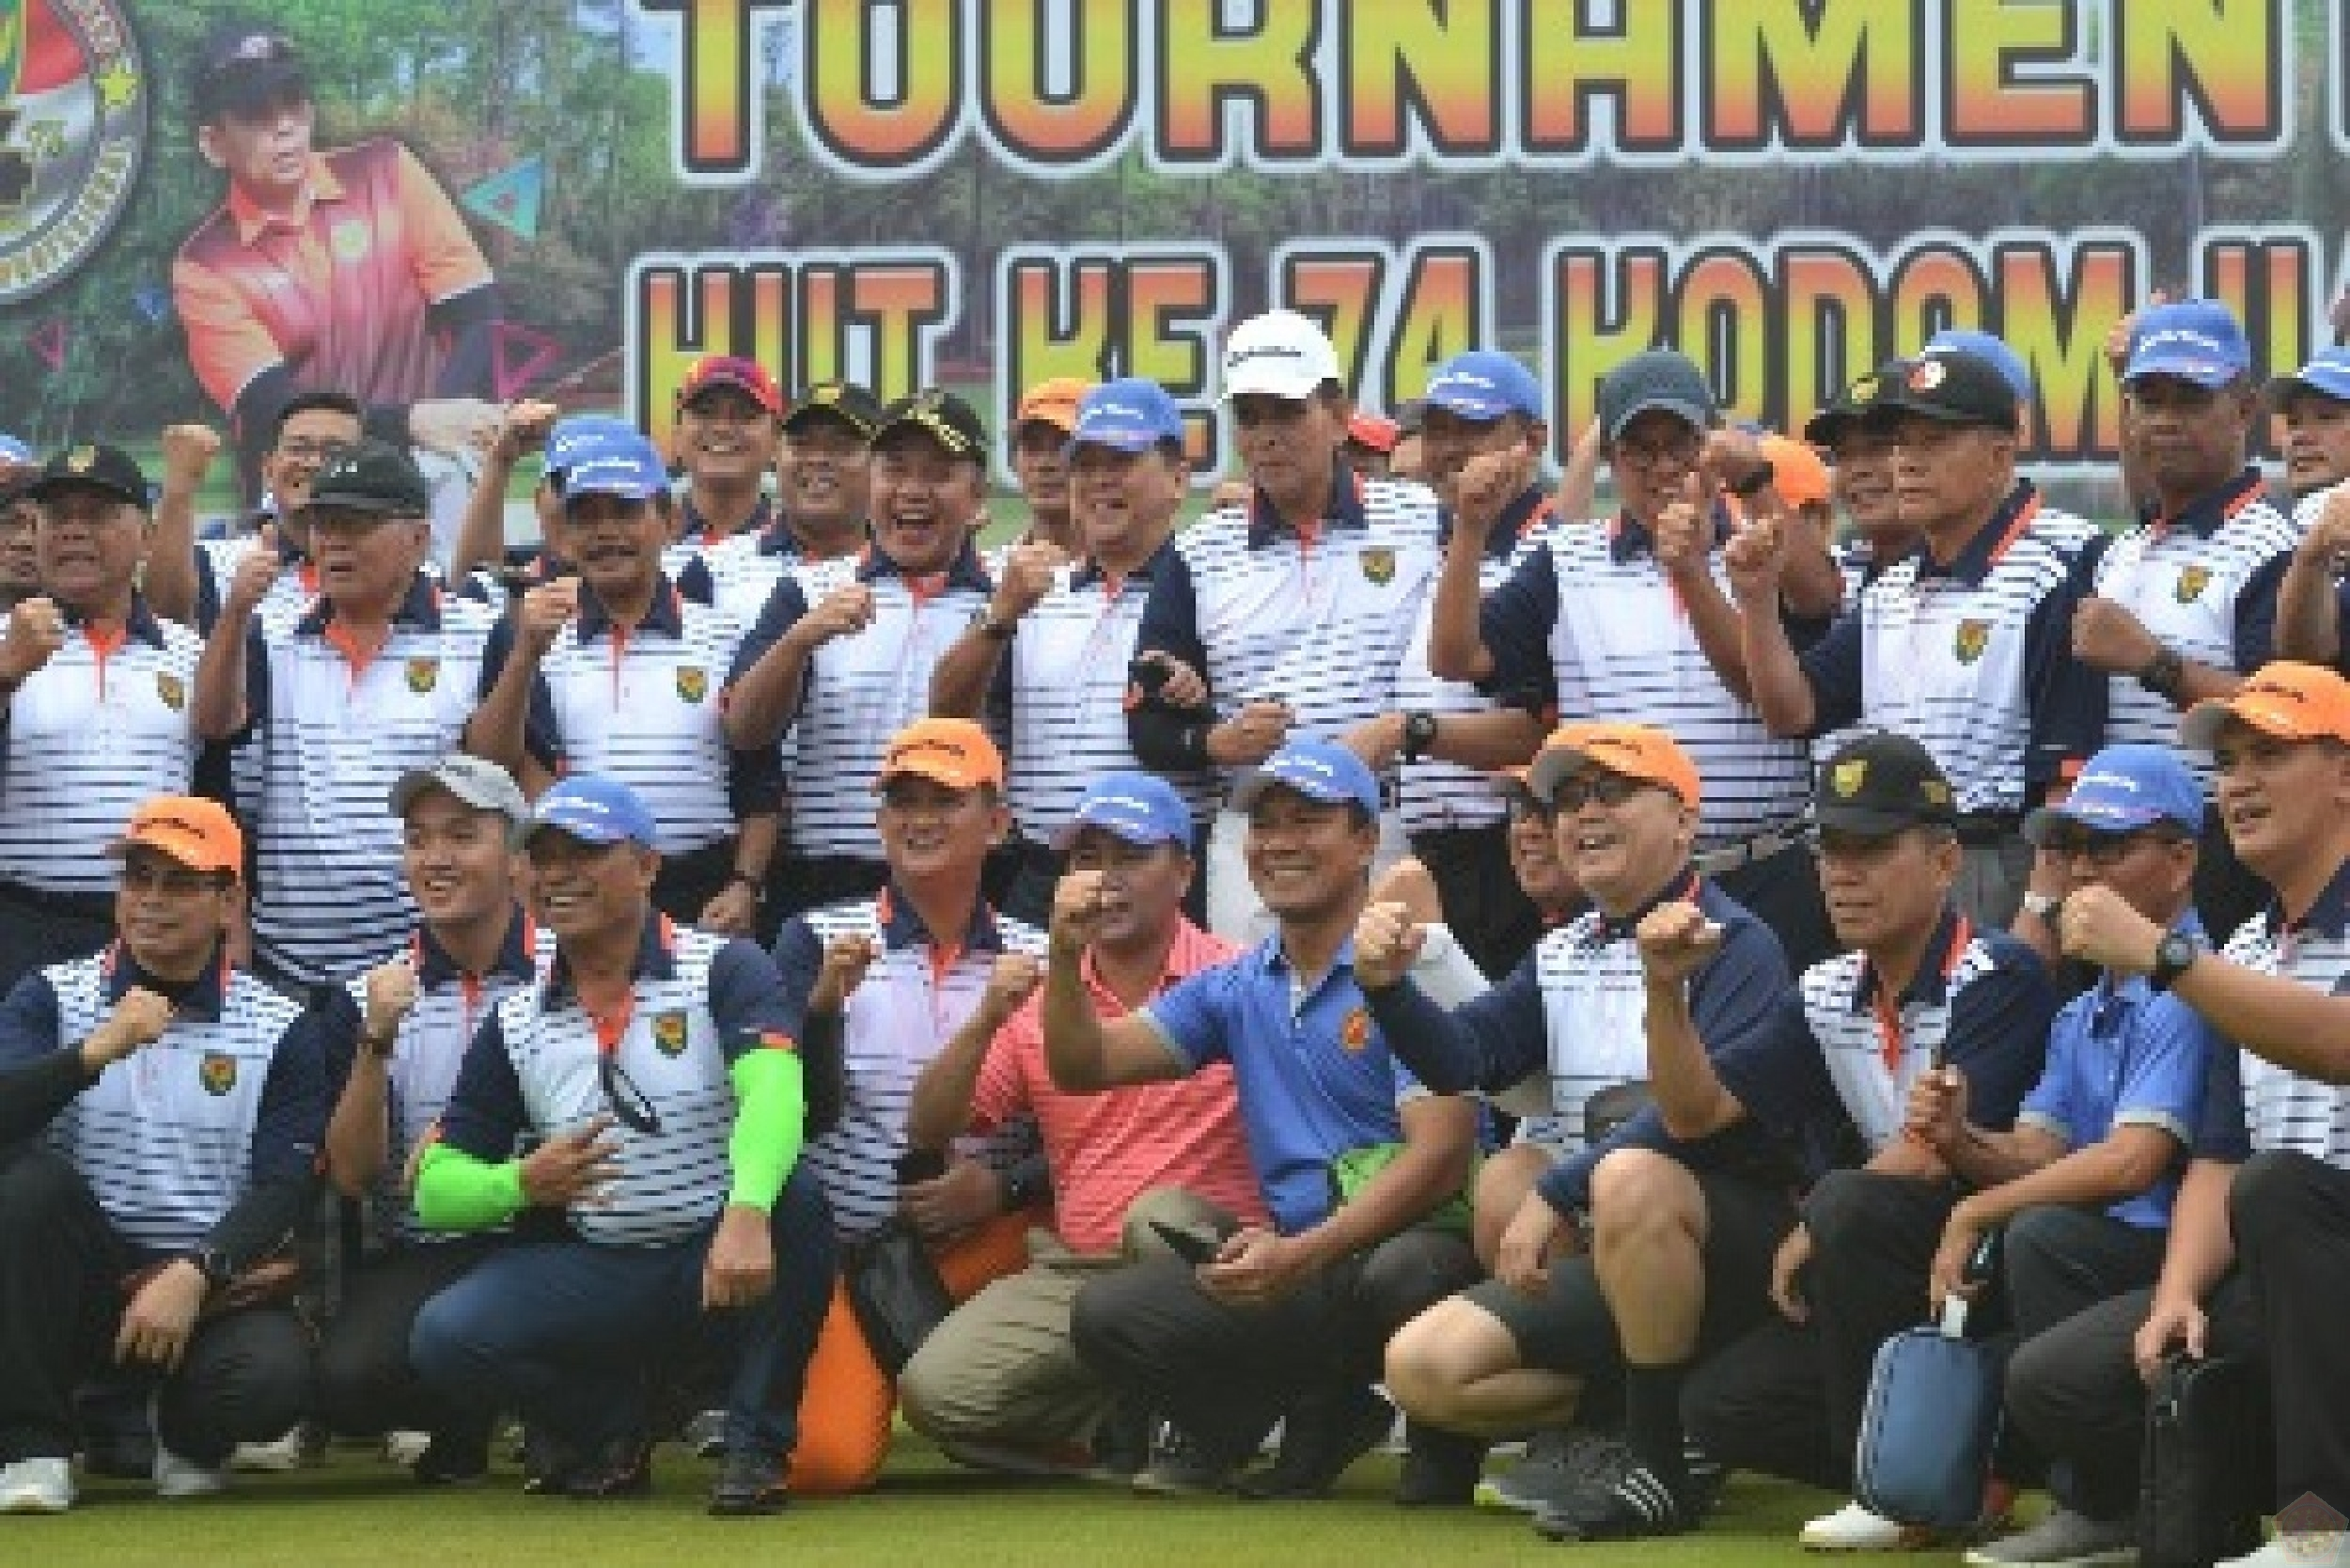 HUT Ke-74, Kodam II/Sriwijaya Gelar Turnament Golf